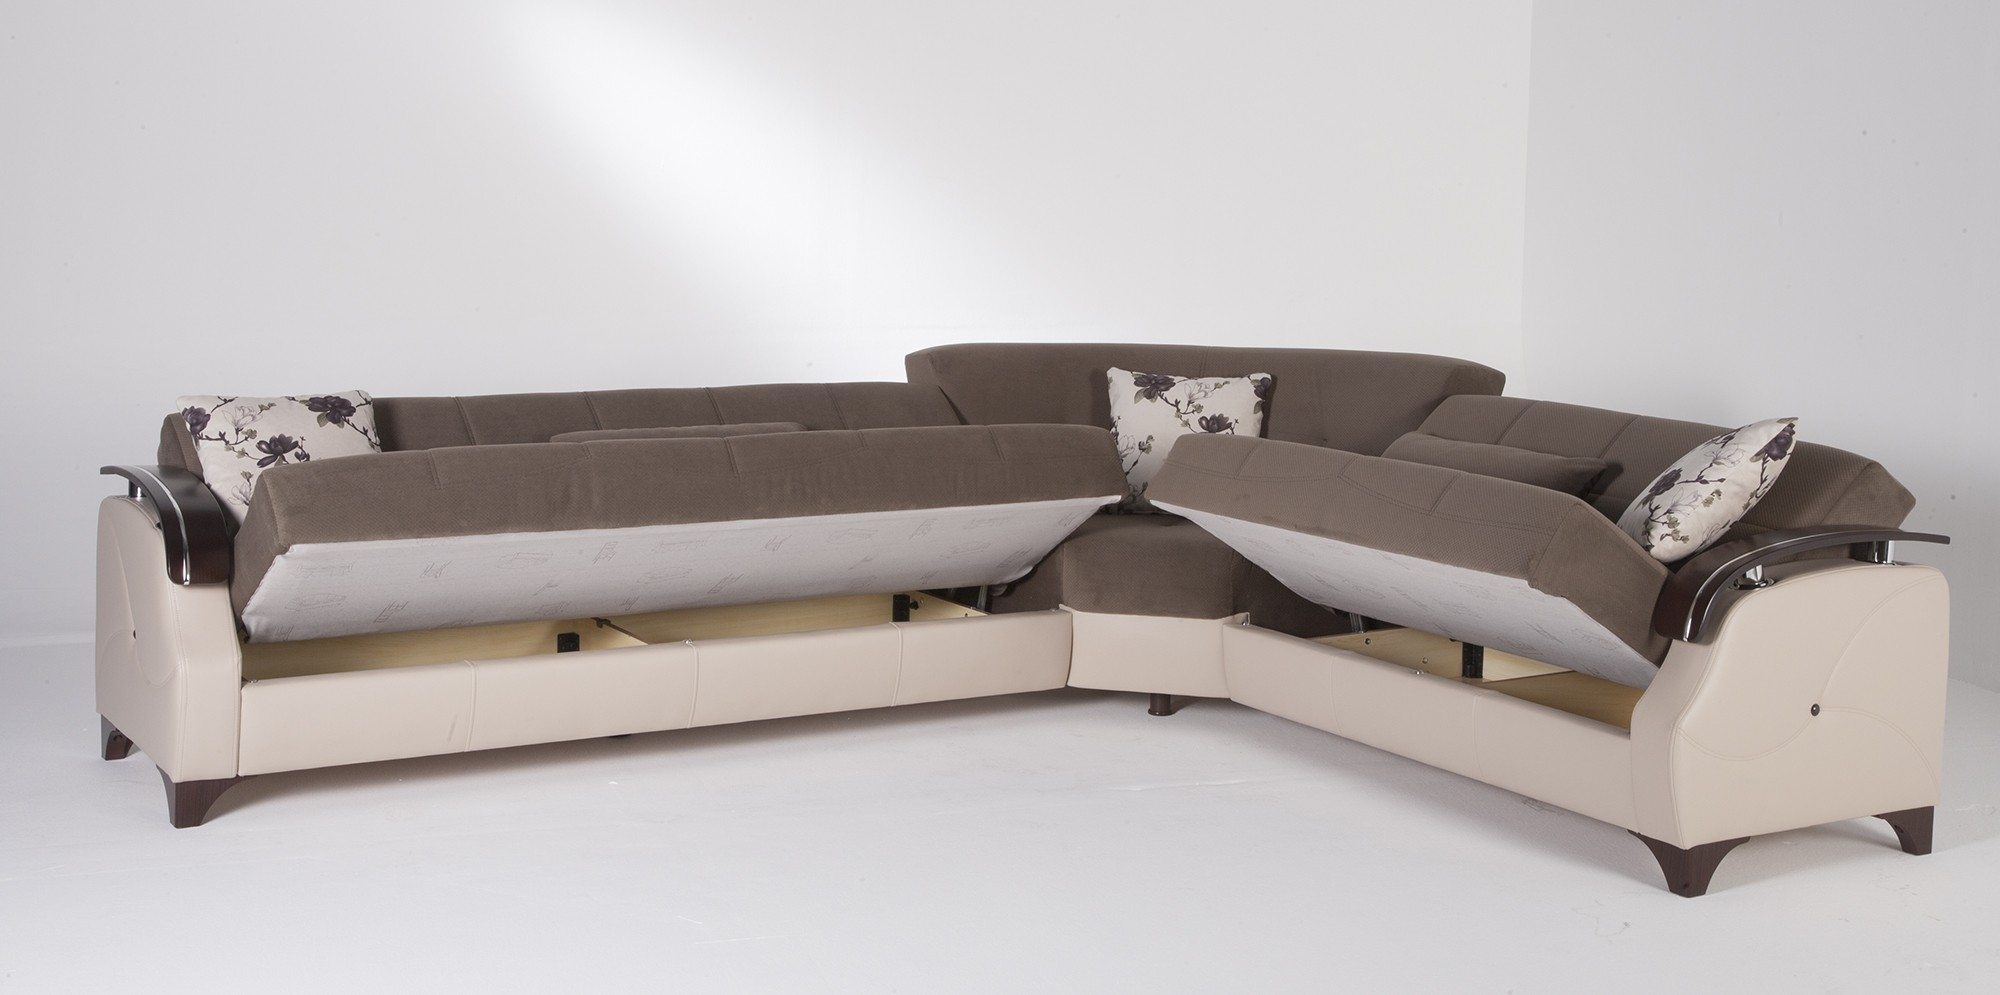 Sectional Sofa Design: Cheap Sectional Sofas Furniture Design Stock With Regard To Sectional Sofas In Stock (Image 7 of 10)